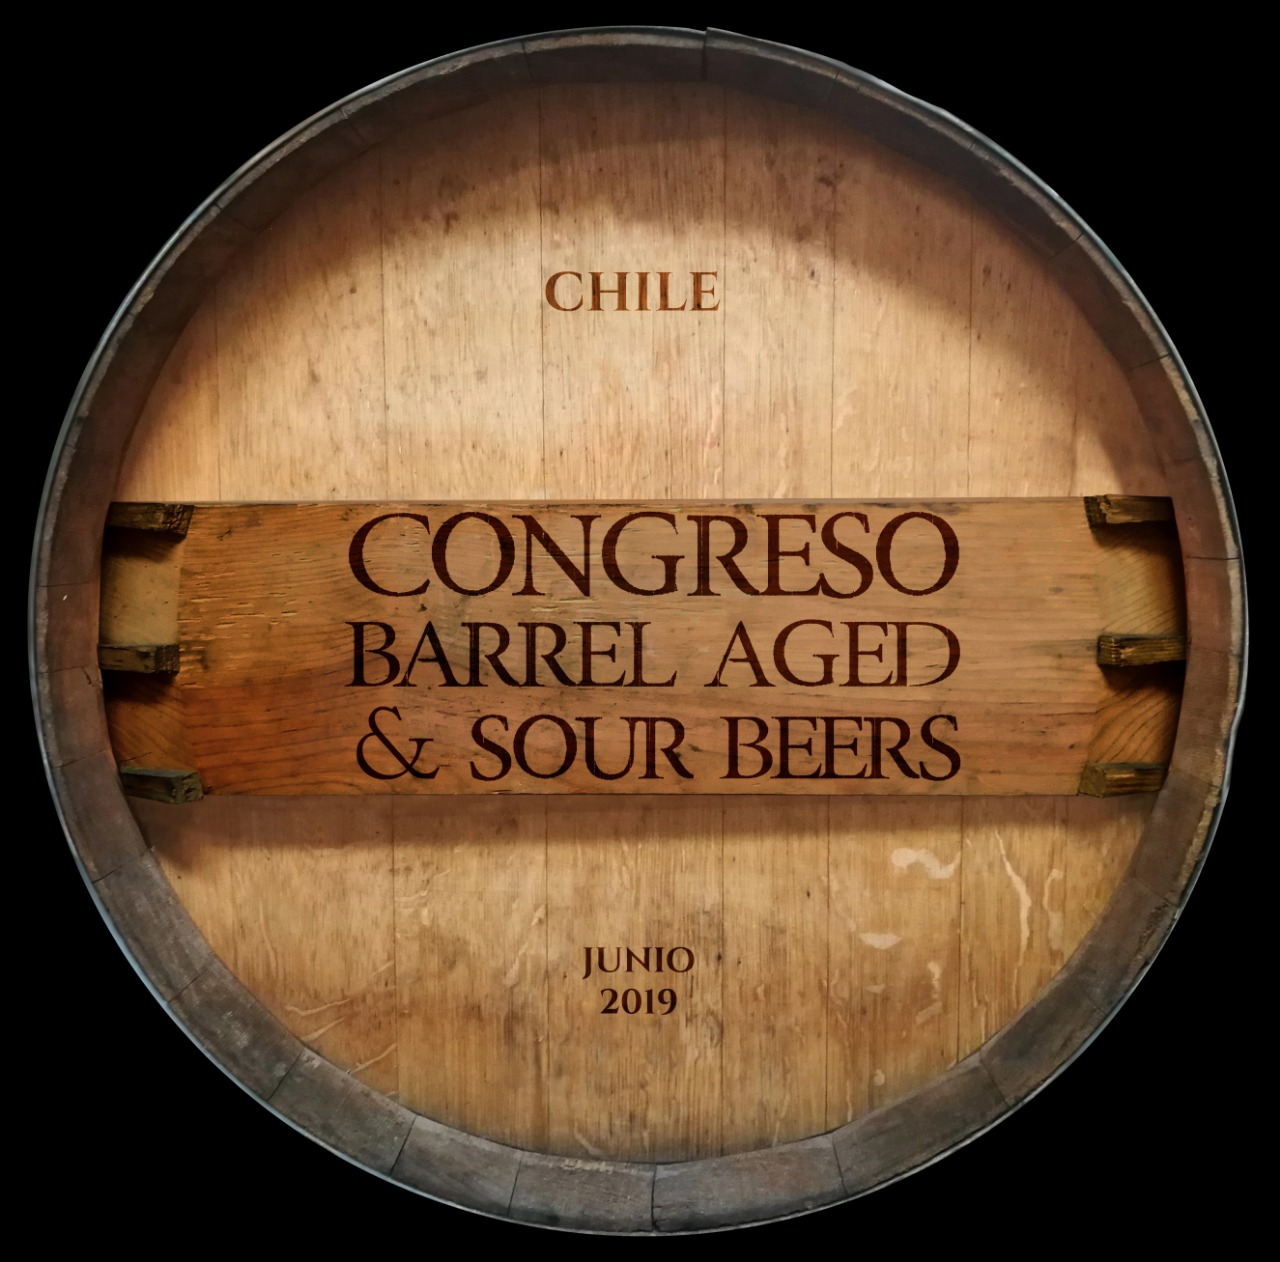 congreso barrel aged .jpg